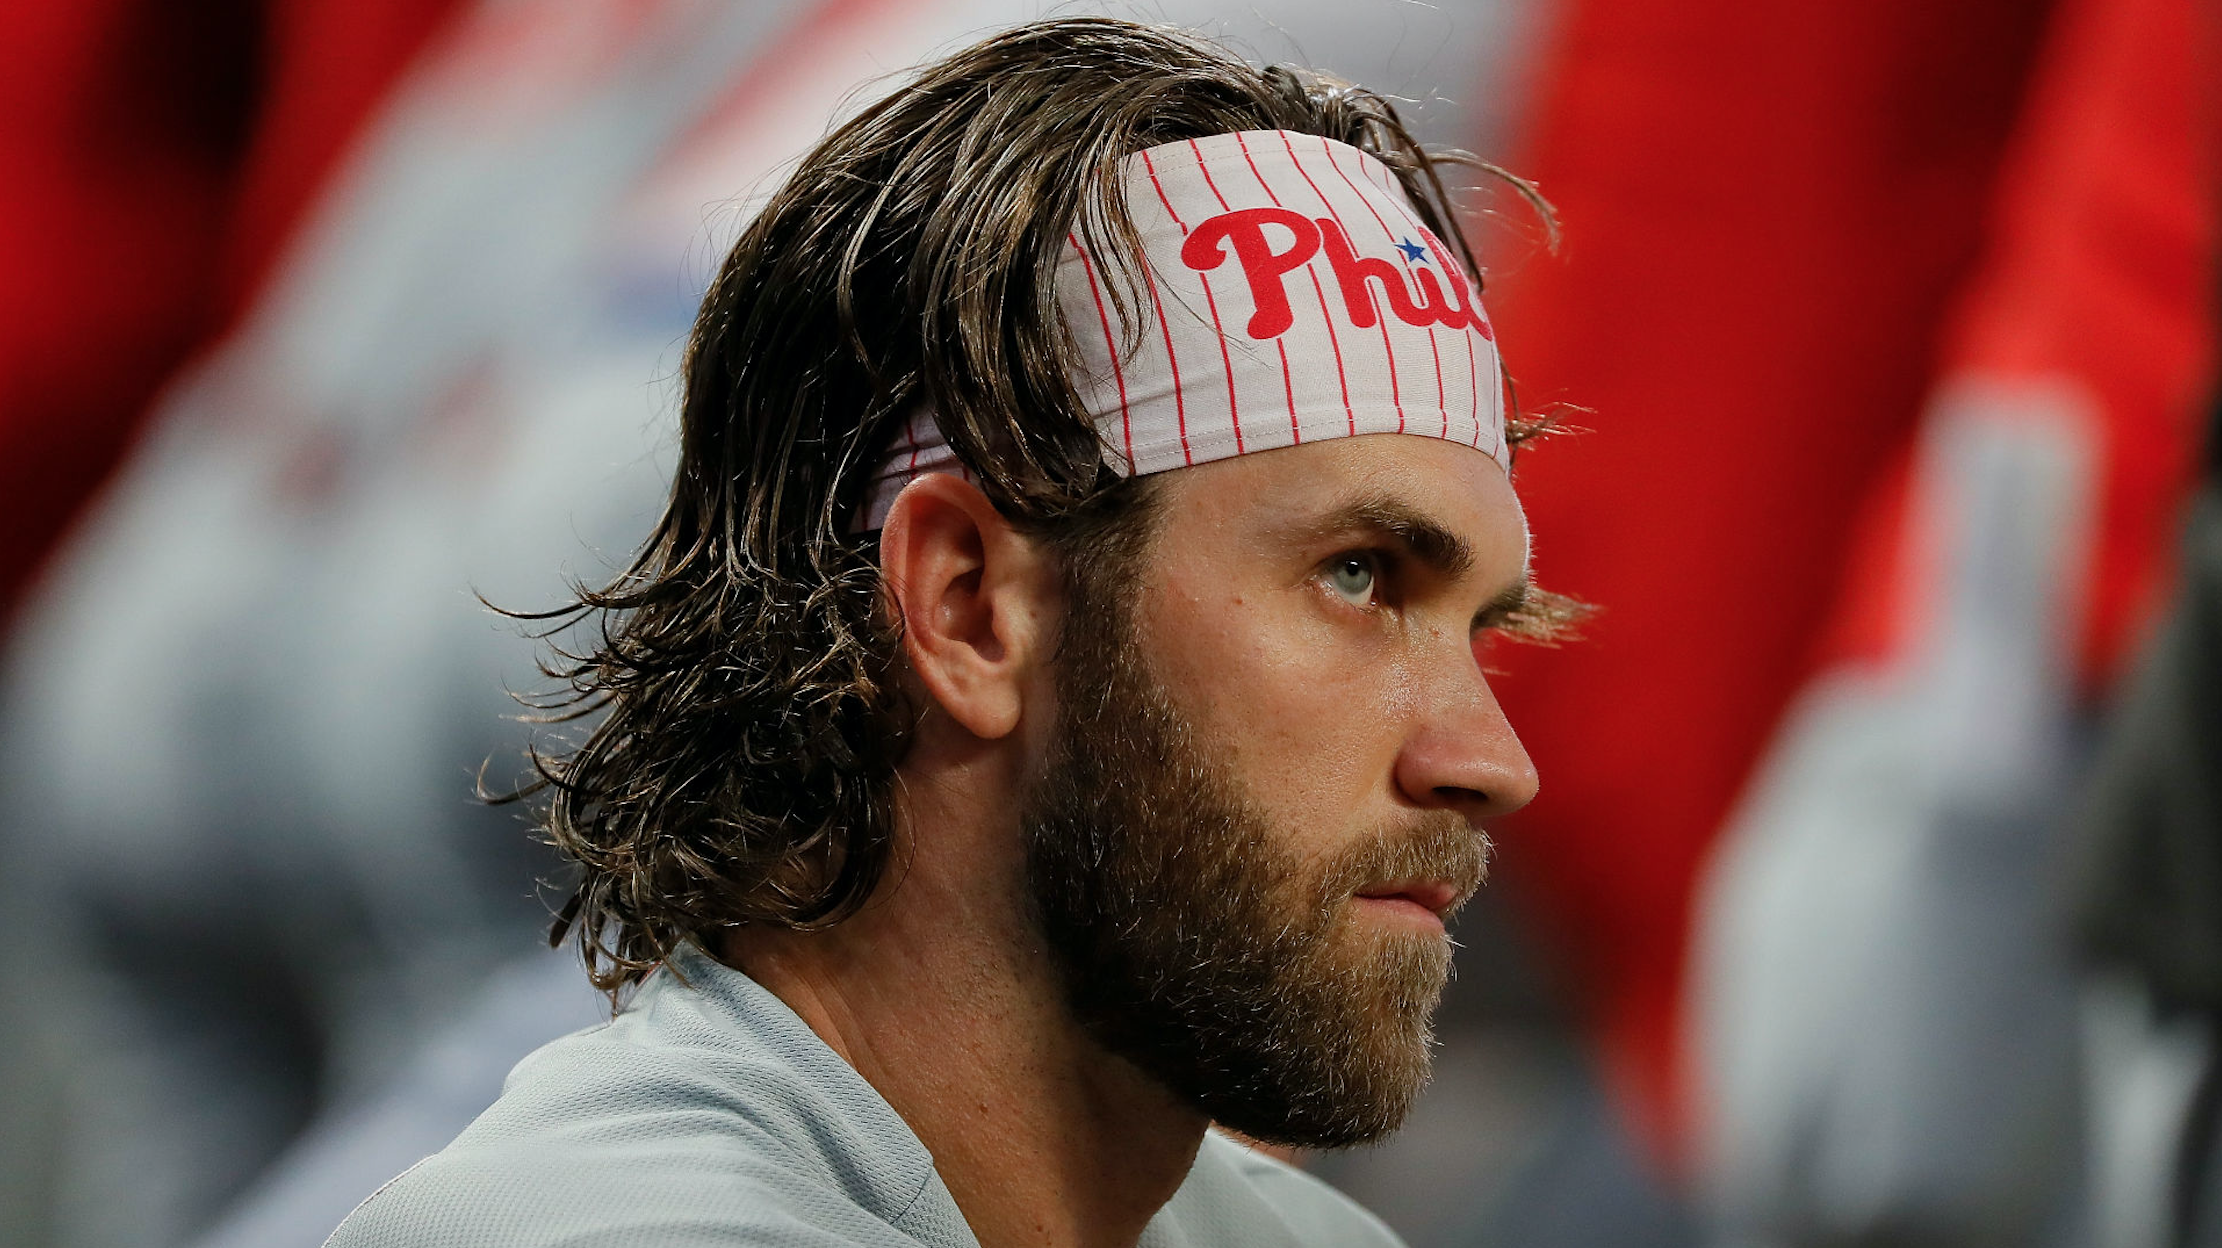 MLB fans troll Bryce Harper after Nationals win World Series